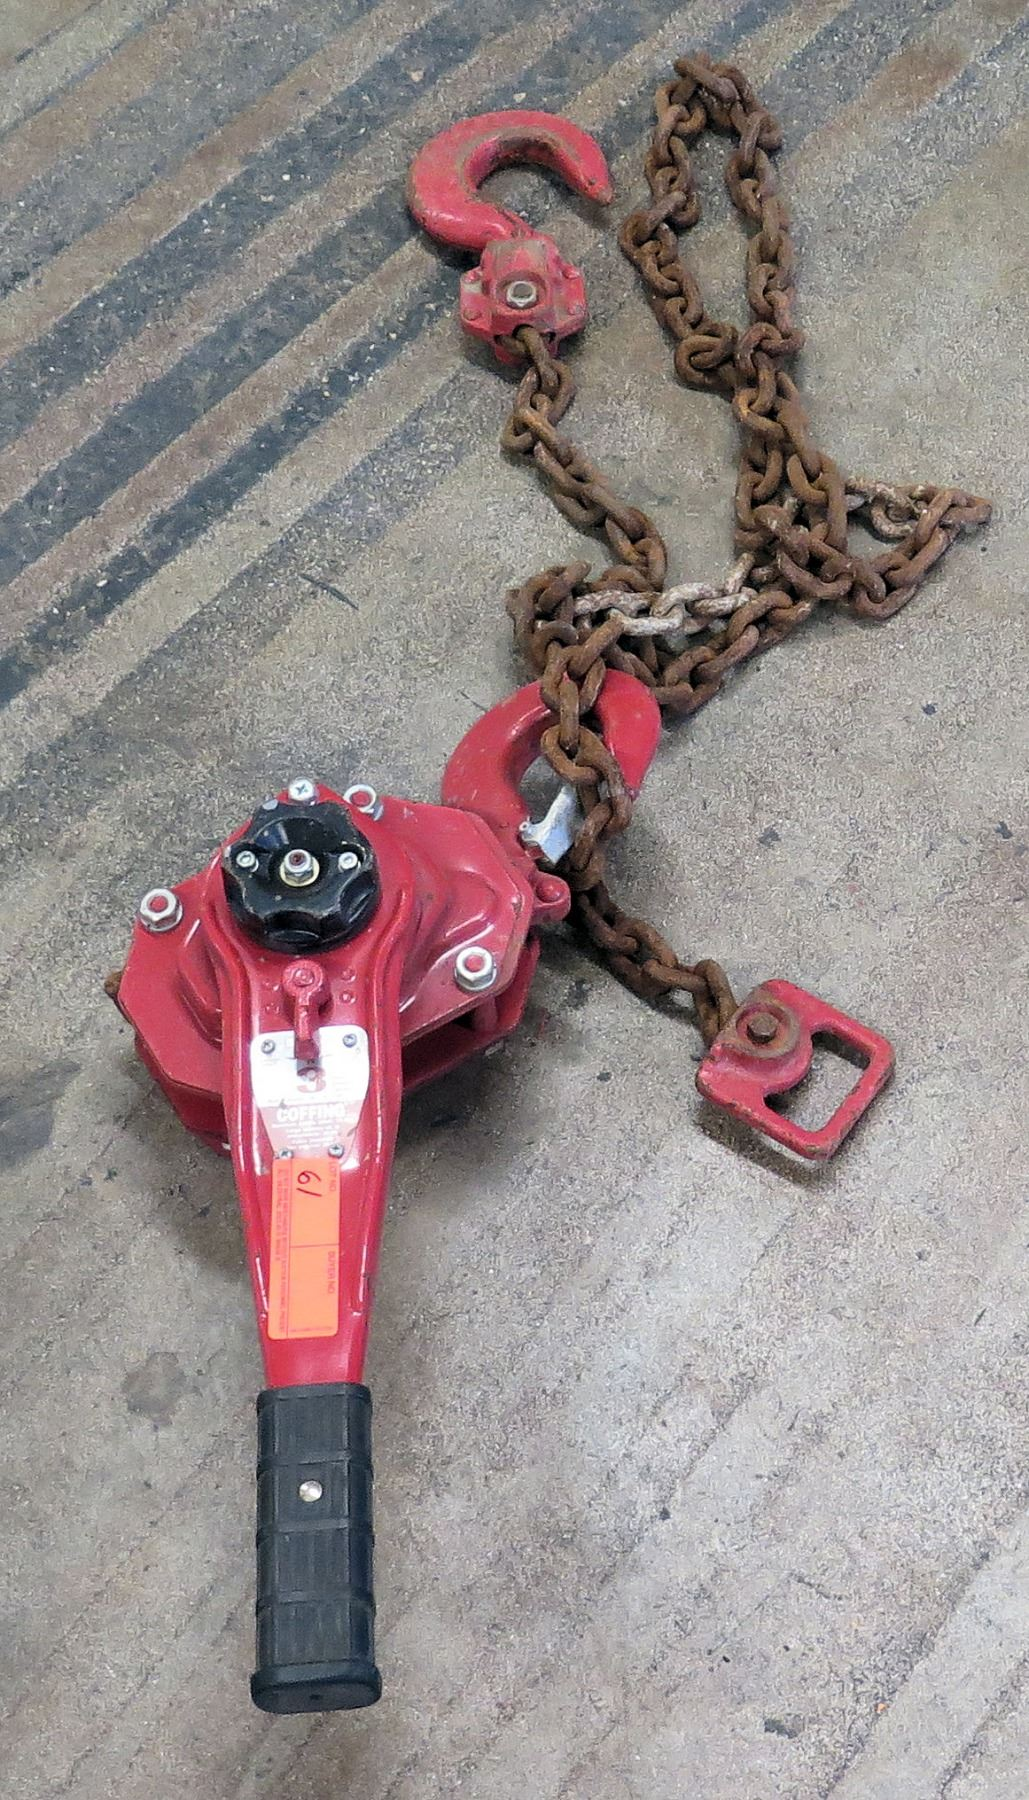 image 1 coffing 3 ton chain hoist red  [ 1029 x 1800 Pixel ]